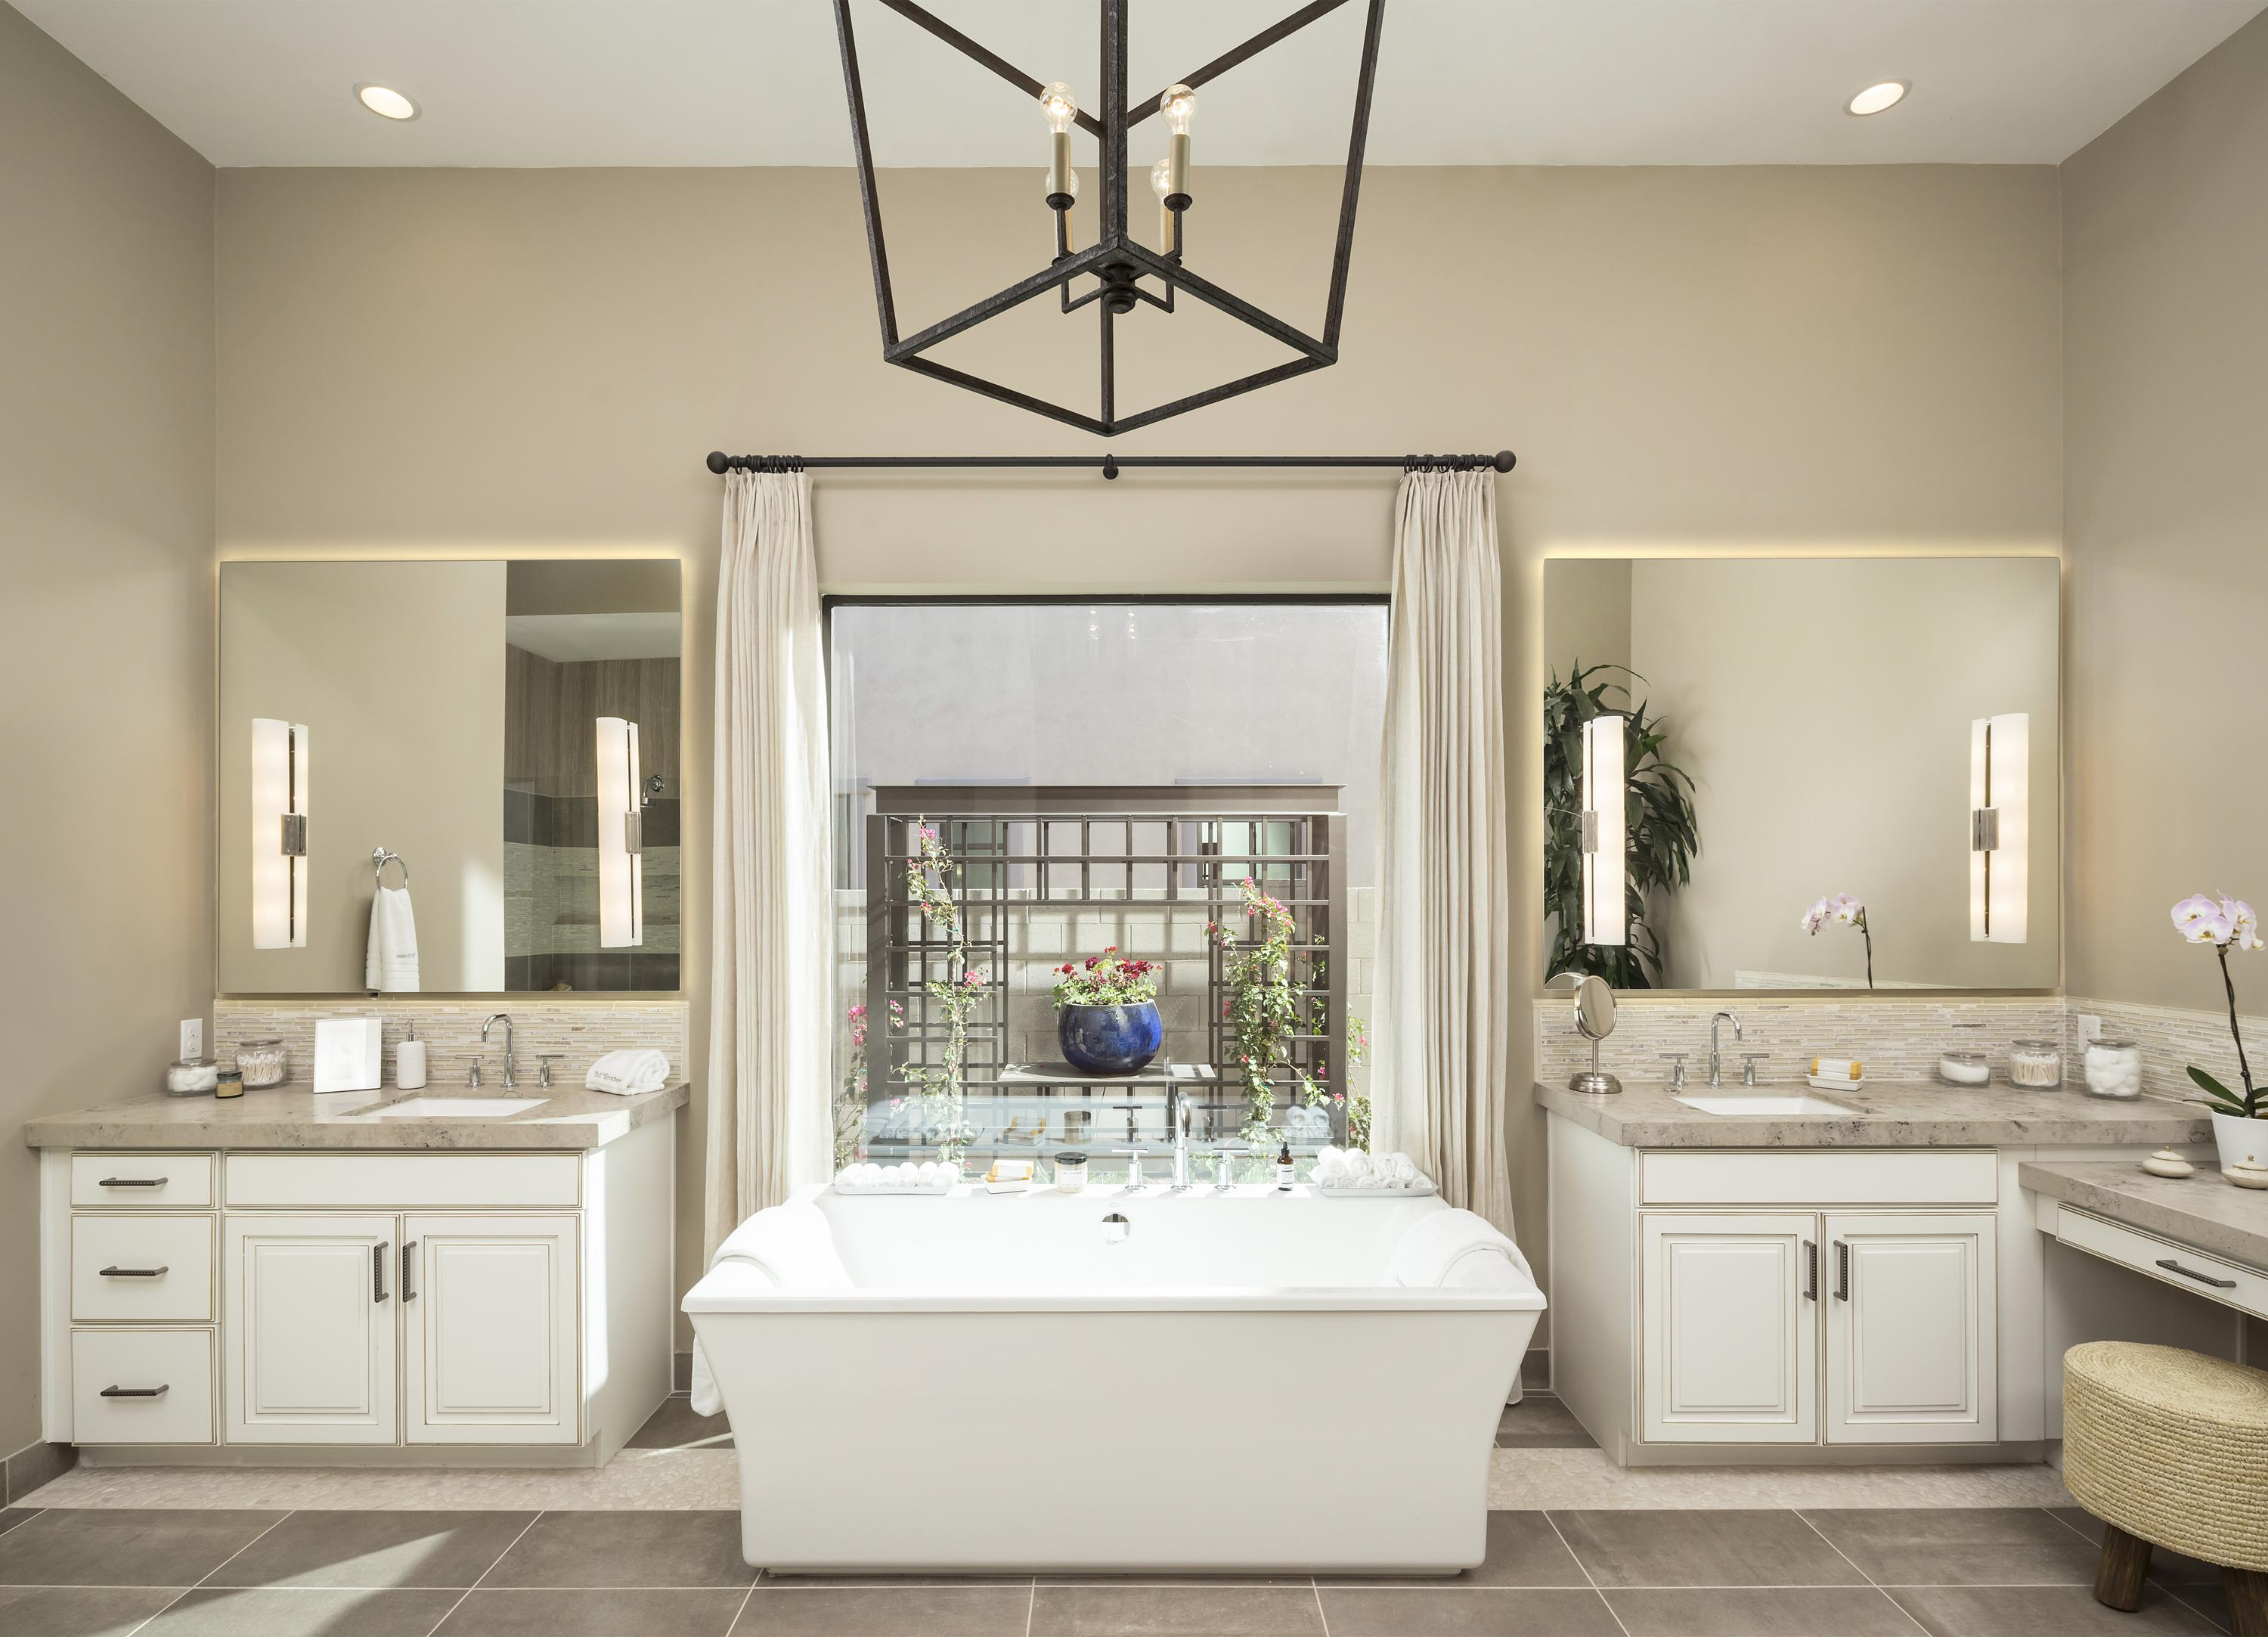 Bathroom with beige colored walls and a free standing bathtub.